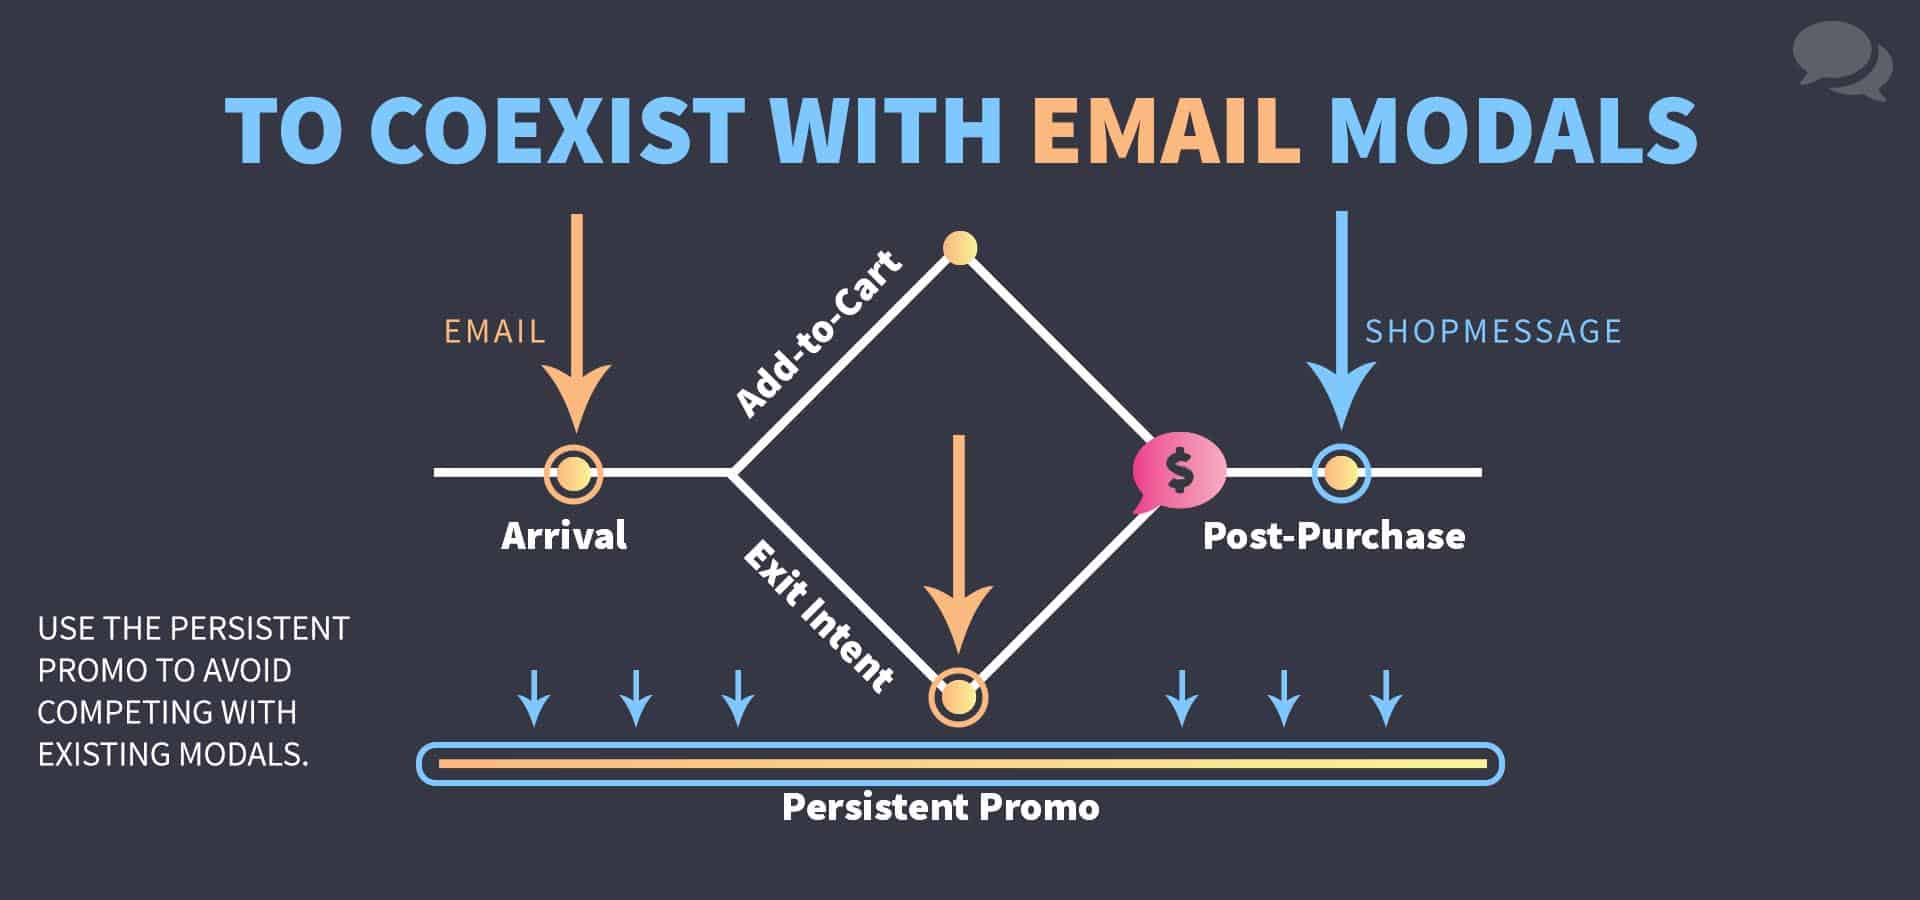 A diagram that shows email capture modals being deployed upon visitor arrival and upon the exhibition of exit intent. A ShopMessage overlay is recommended at the post-purchase stage while also recommending a persistent promotion display in tandem with the email capture modals.